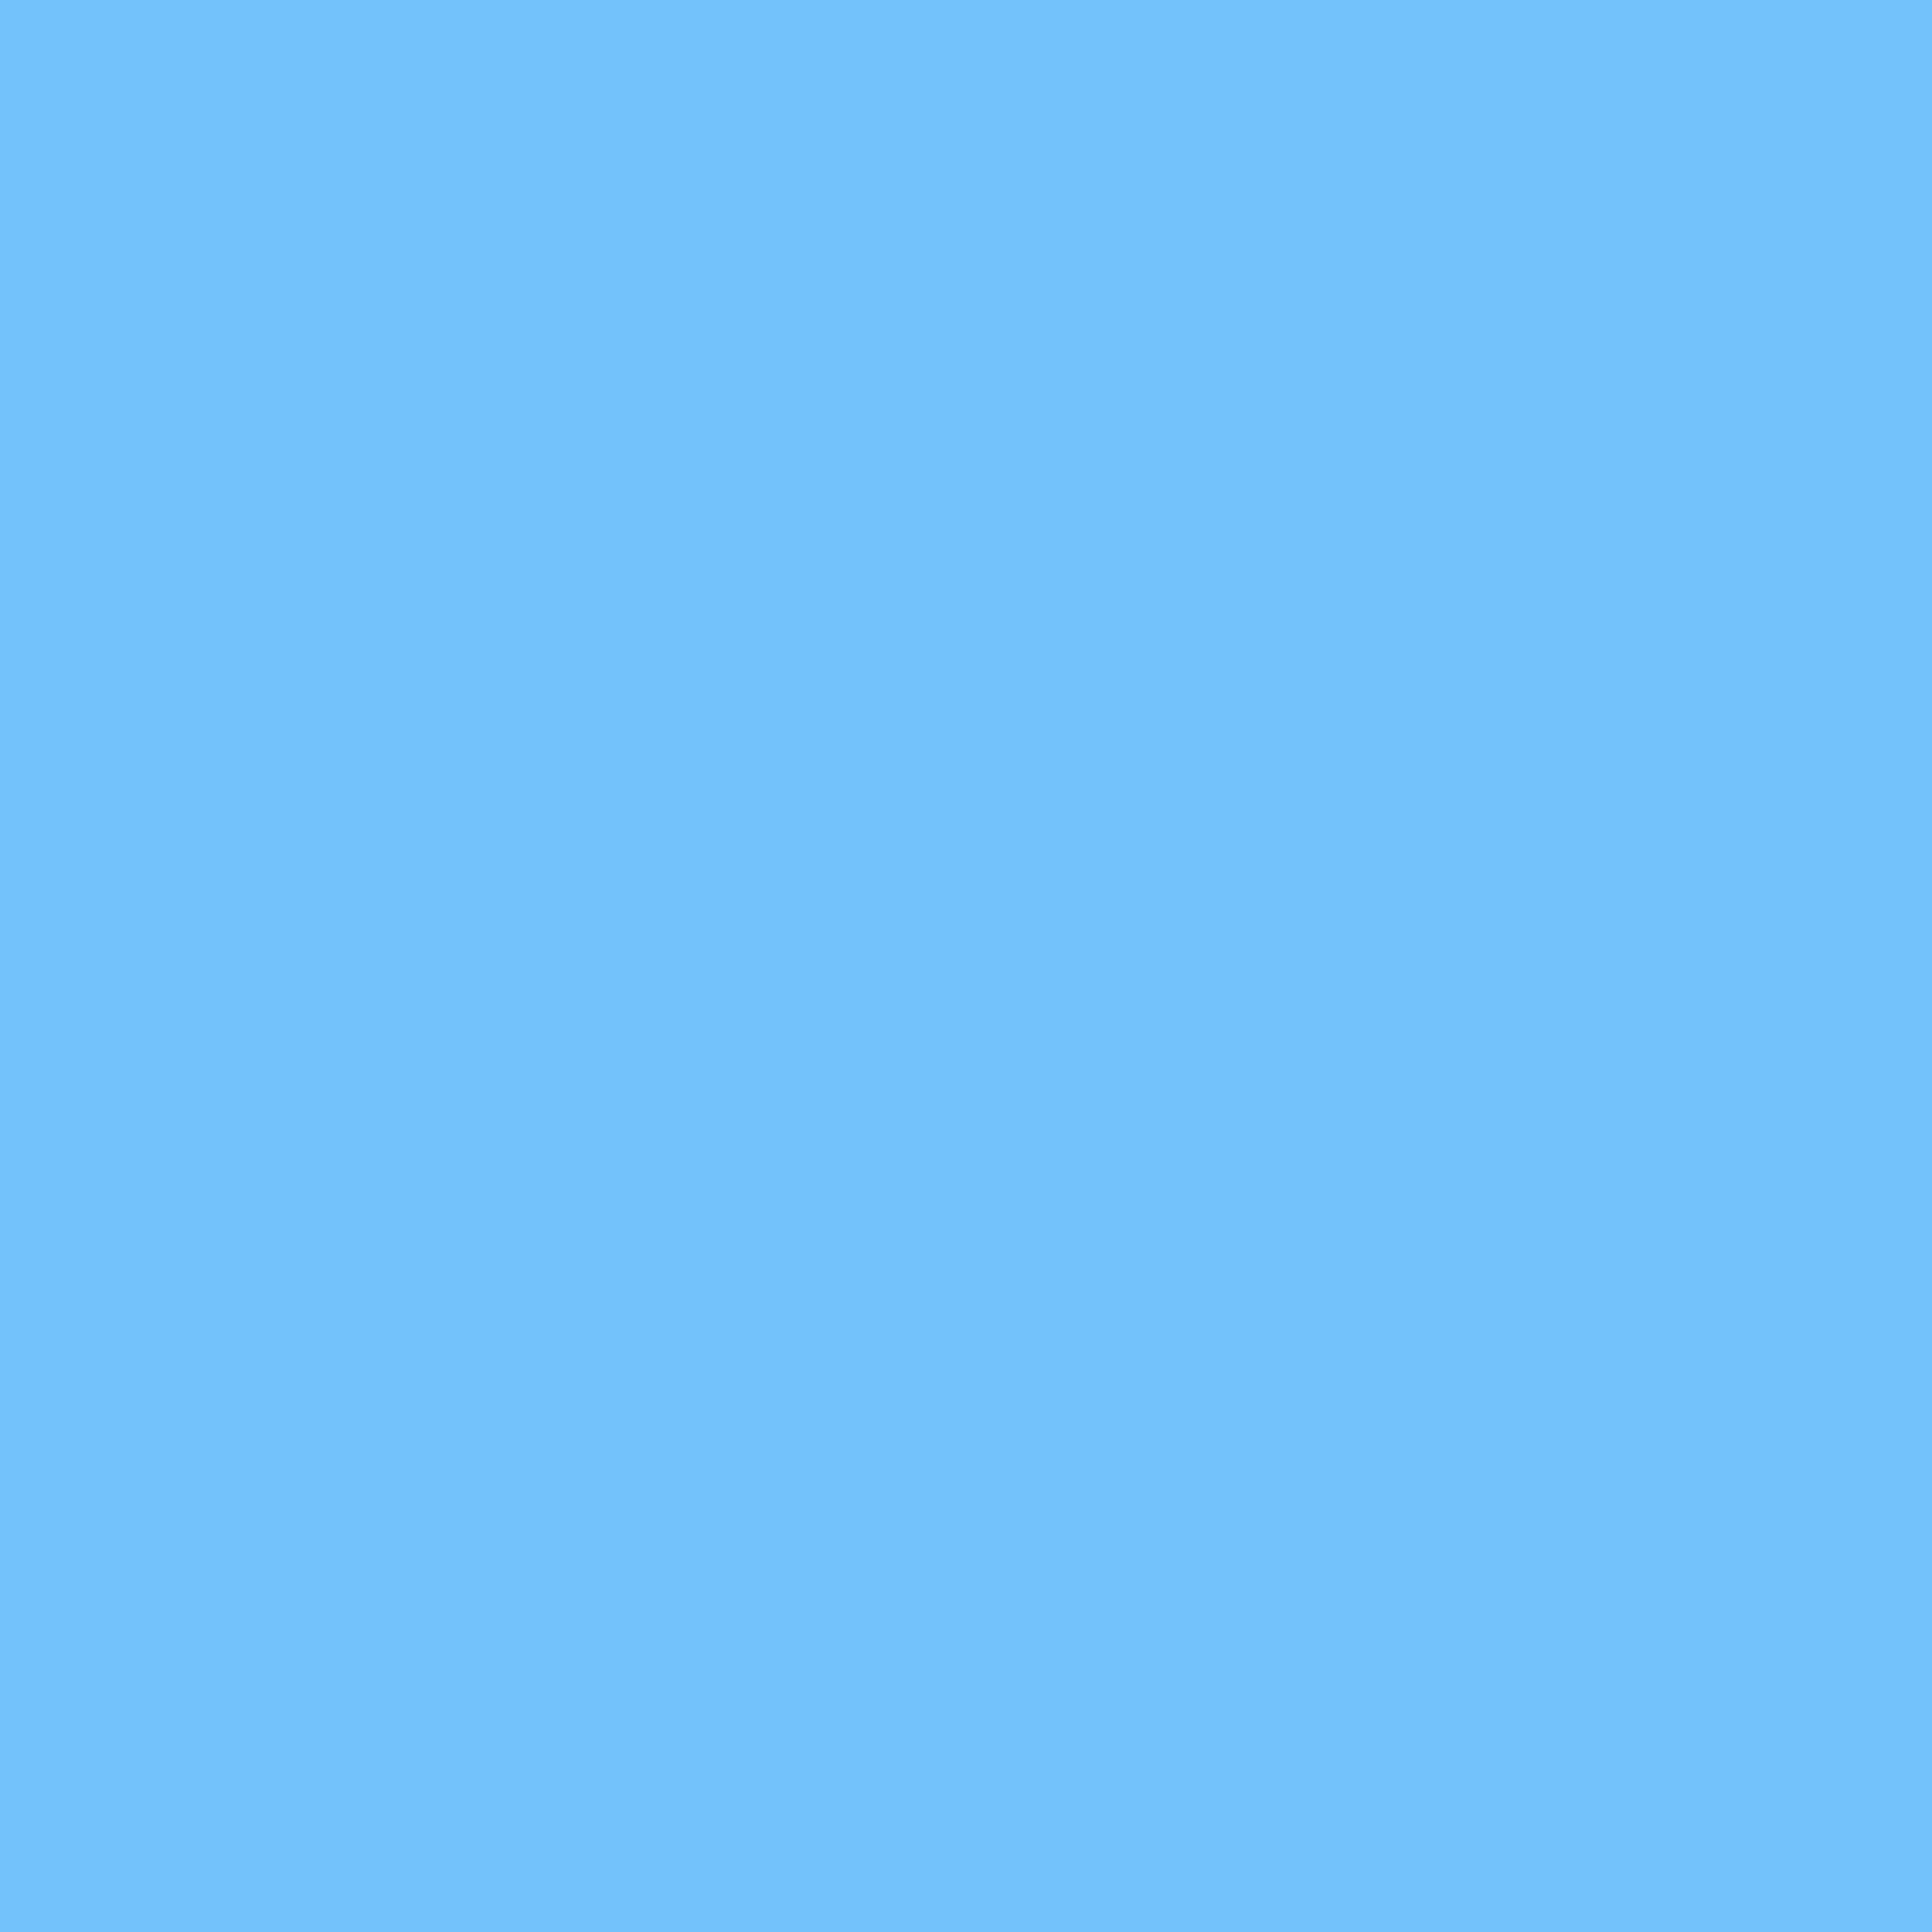 3600x3600 Maya Blue Solid Color Background